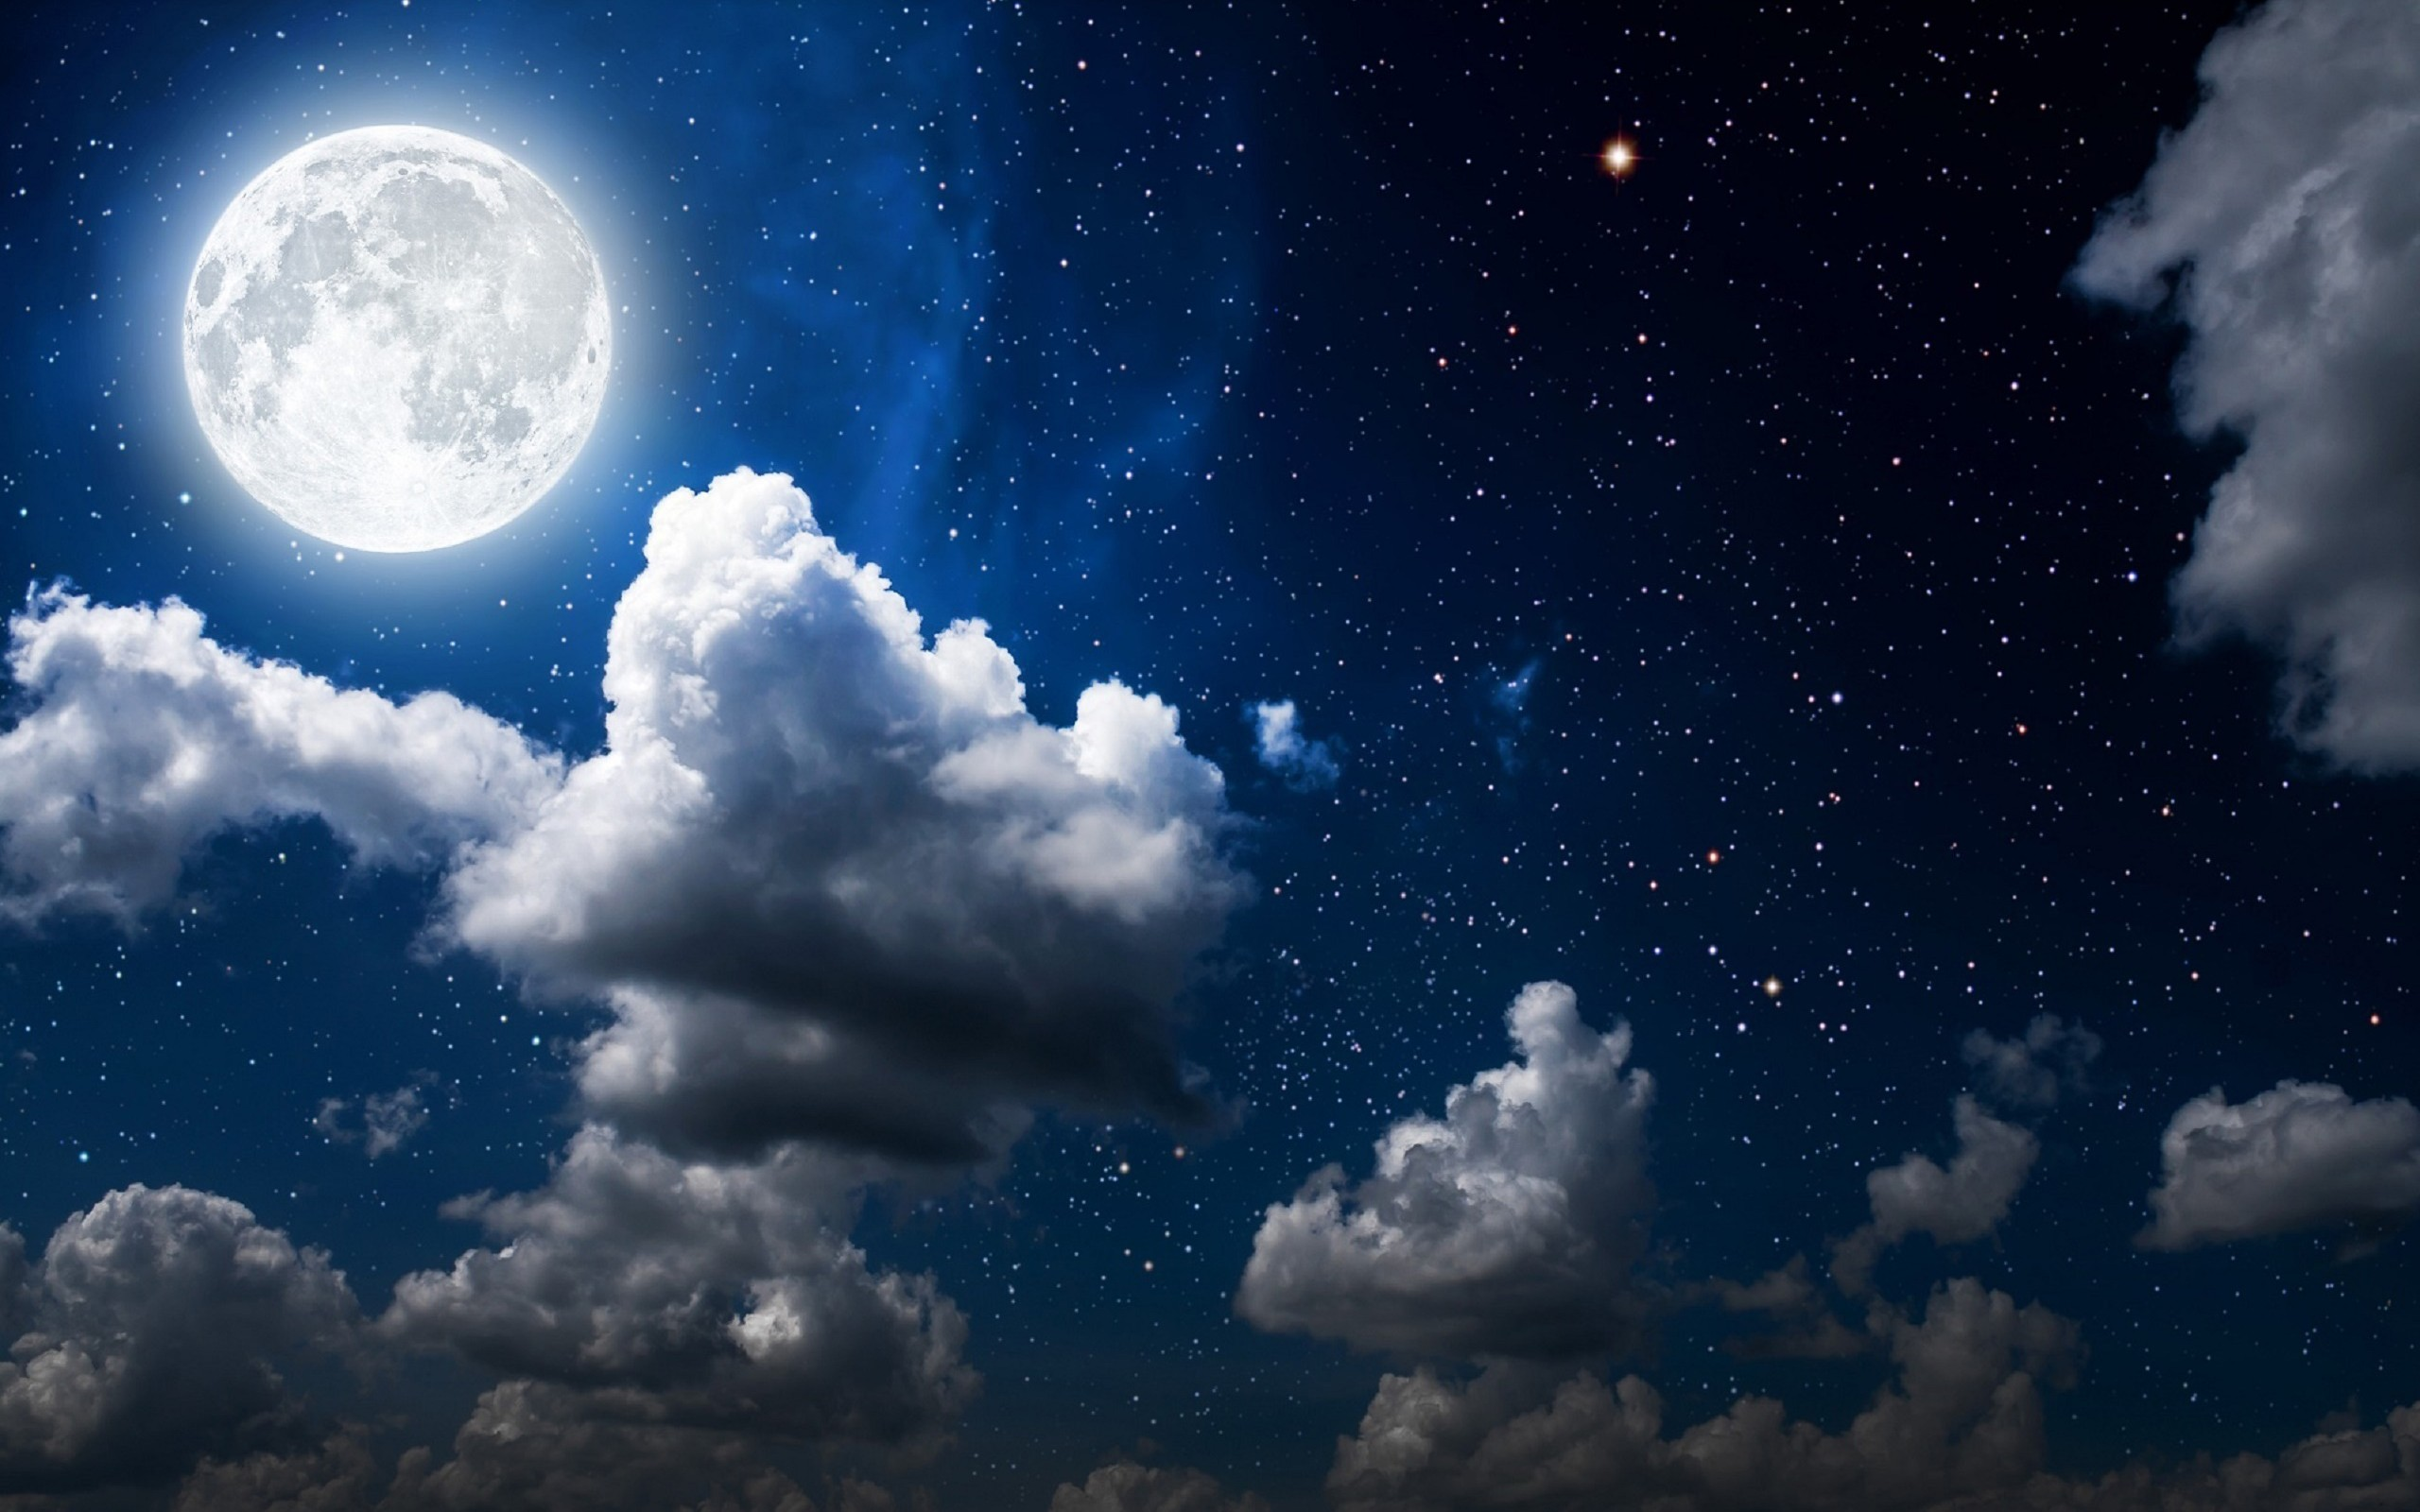 Starry Night Sky Wallpaper Hd | Wallpaper sportstle